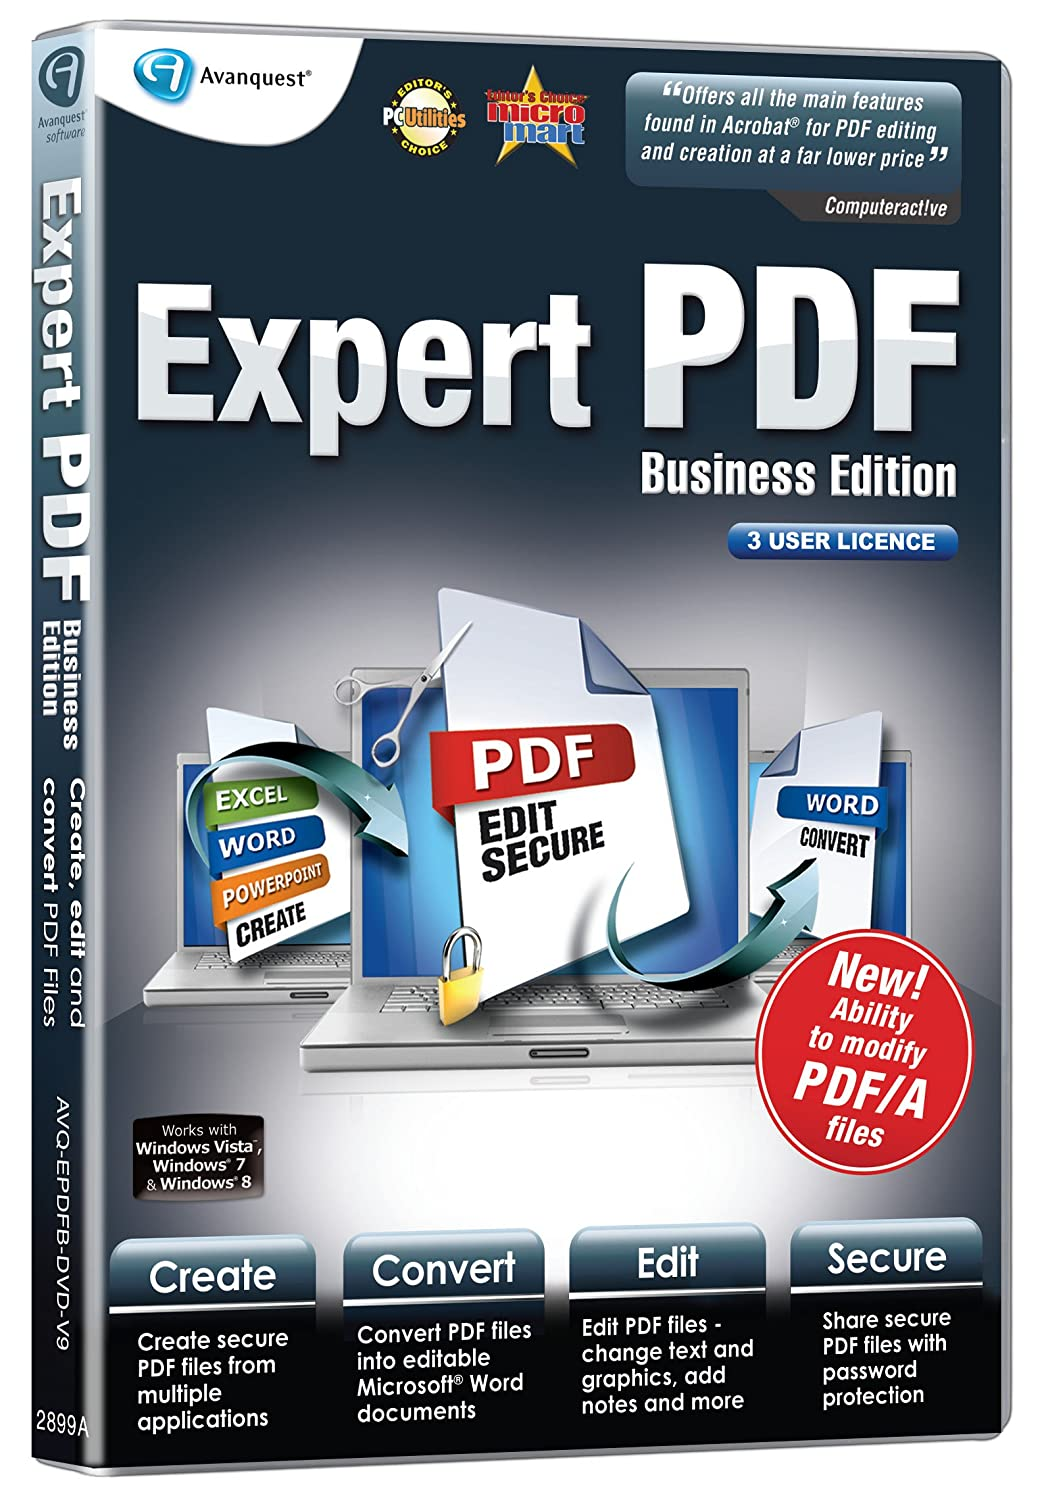 Avanquest expert pdf 9 business edition 3 user licence-neuf scellé.